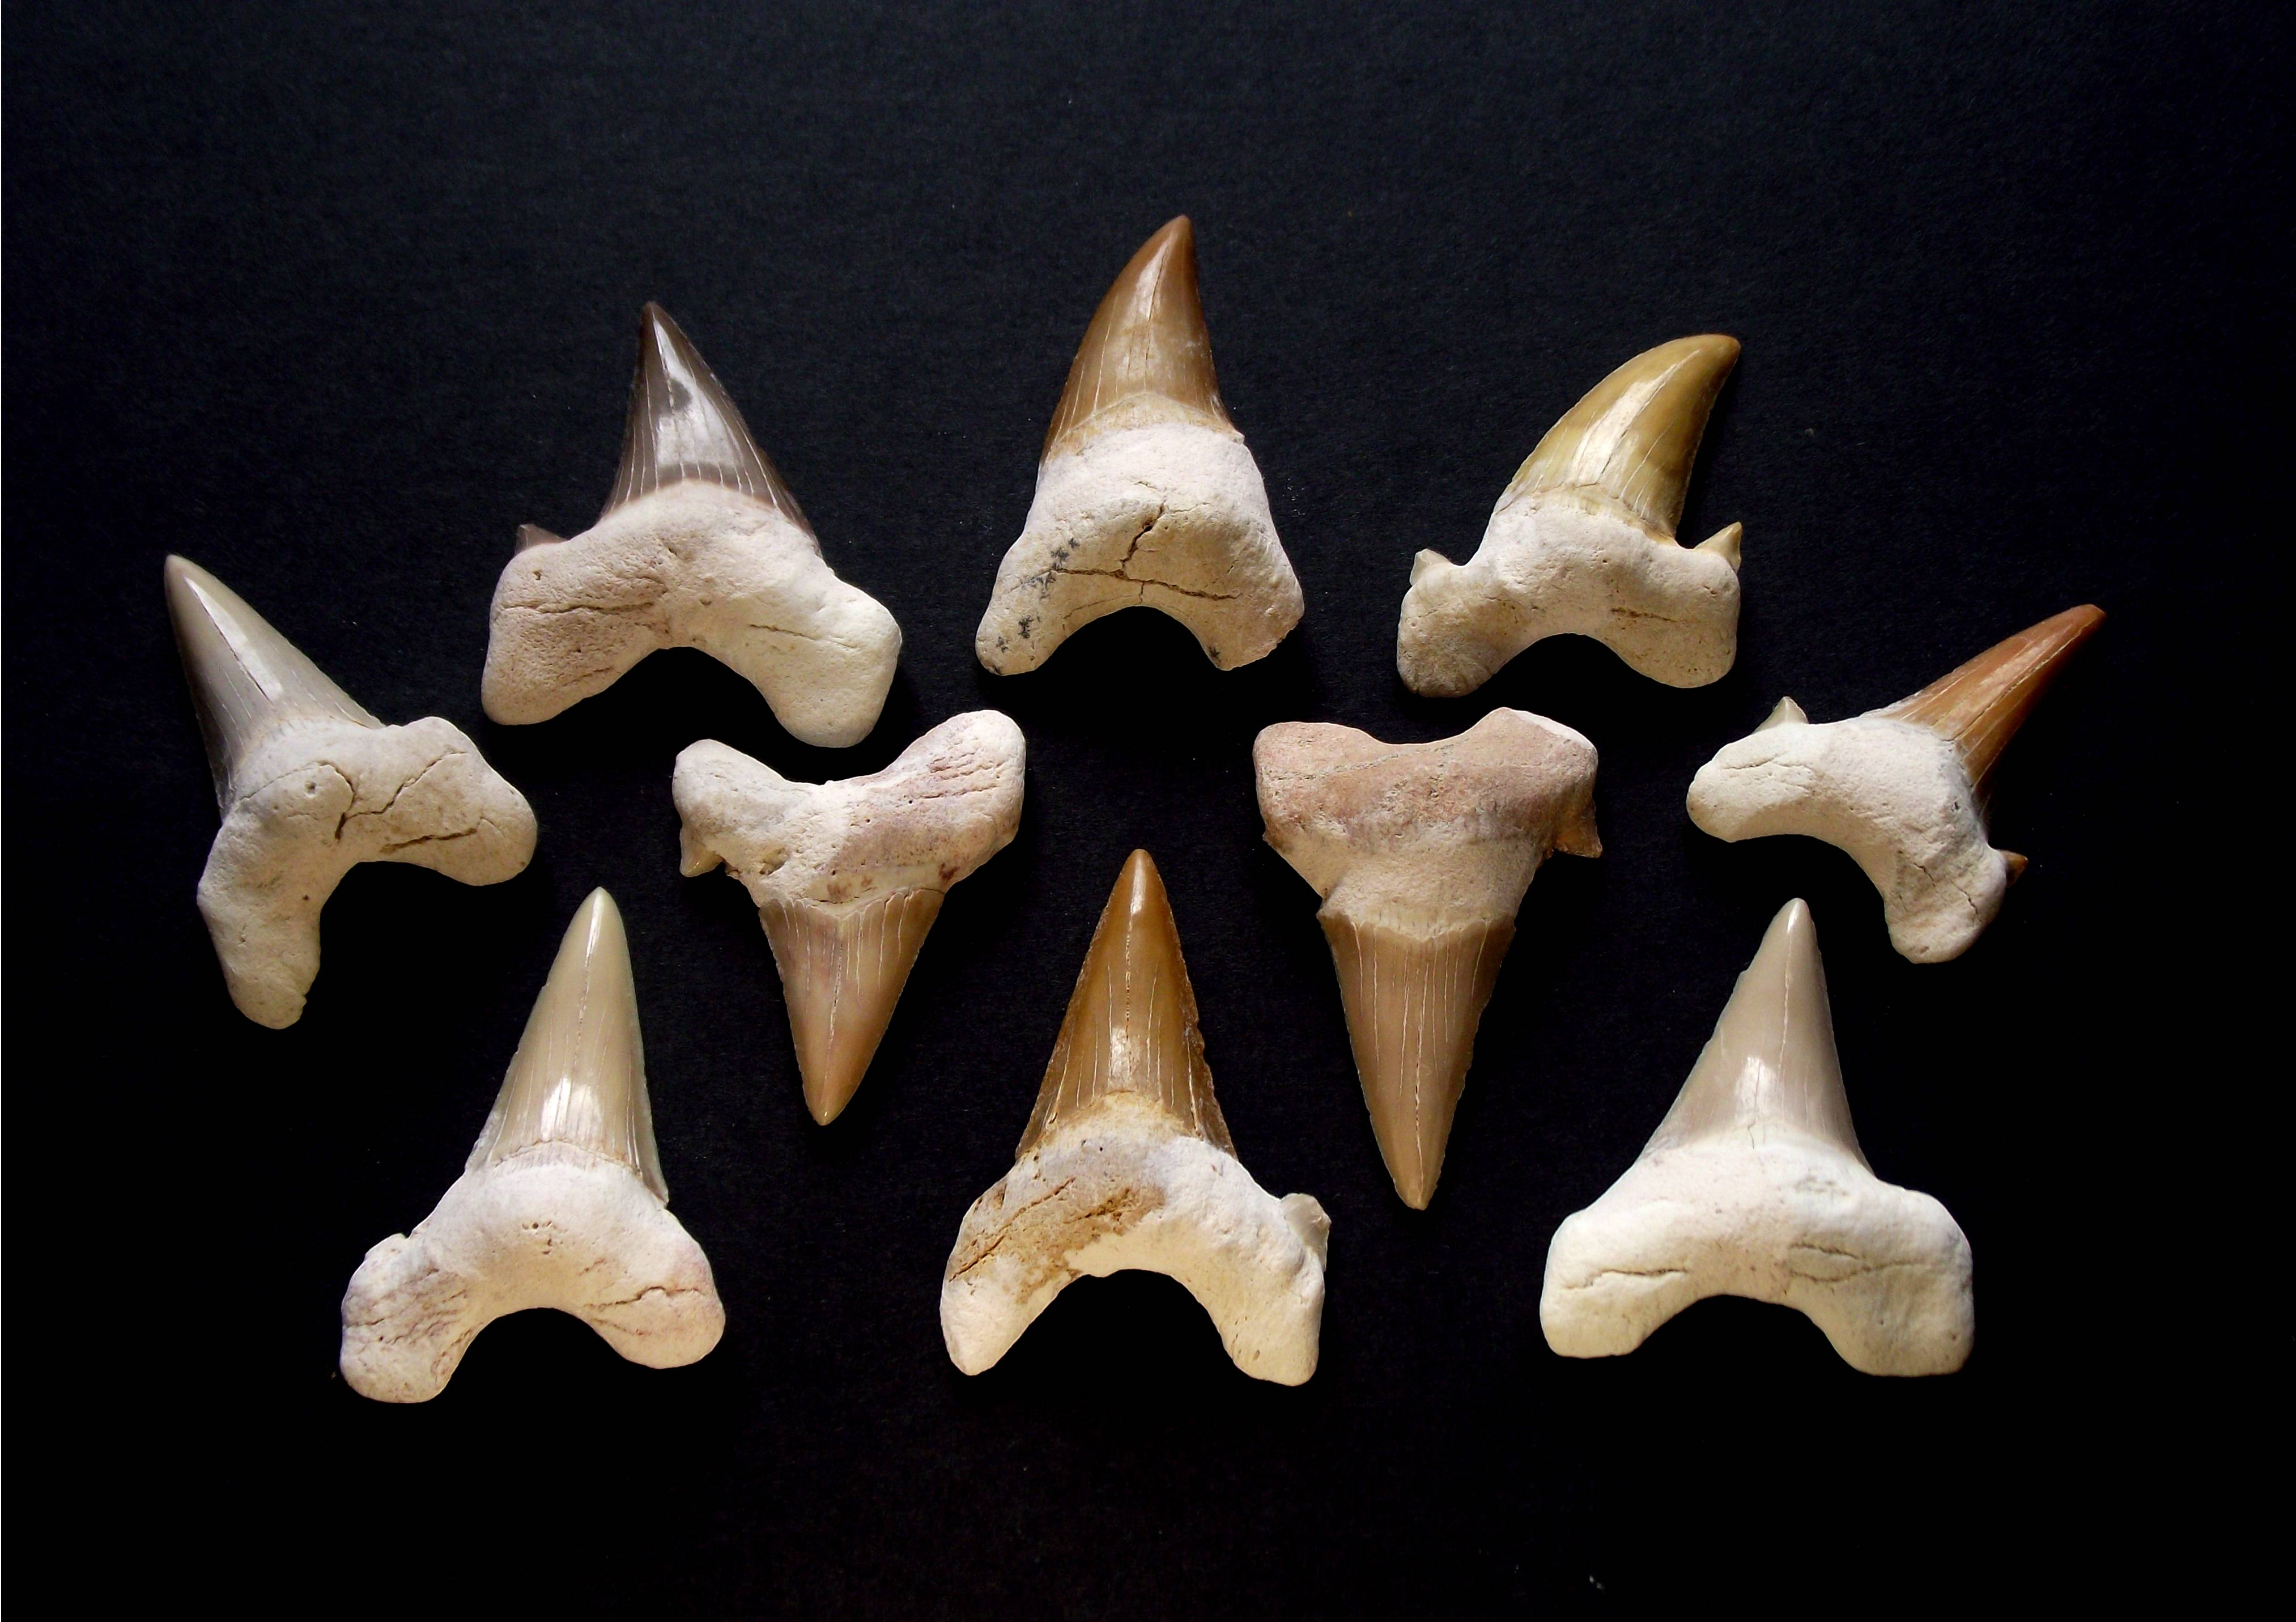 What does a shark tooth look like - answers.com